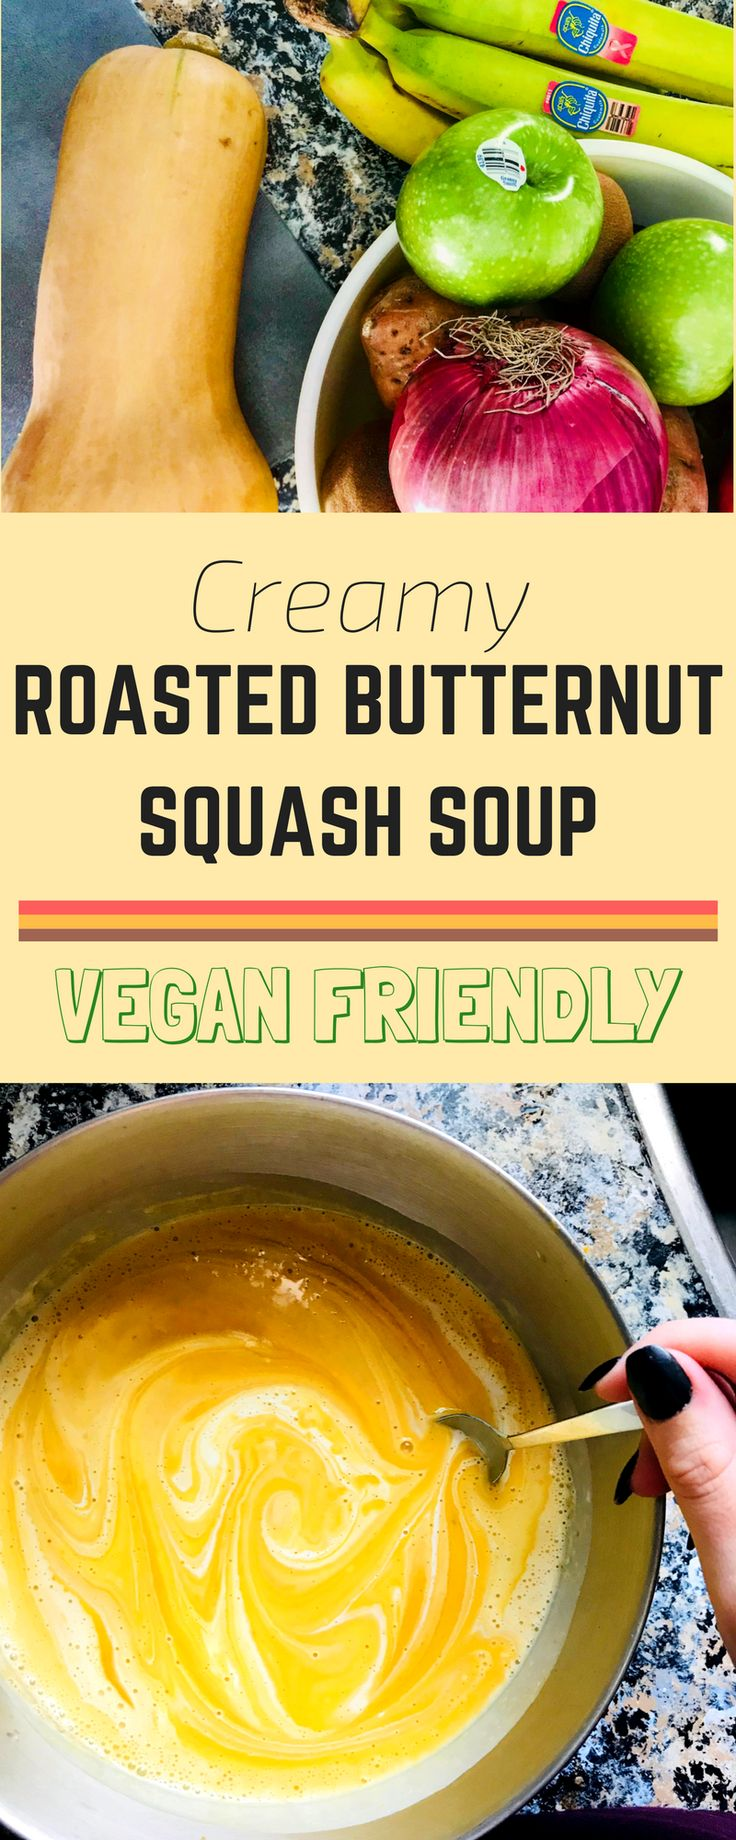 Vegan Roasted Butternut Squash Soup - Creamy and delicious! Perfect for Thanksgiving!